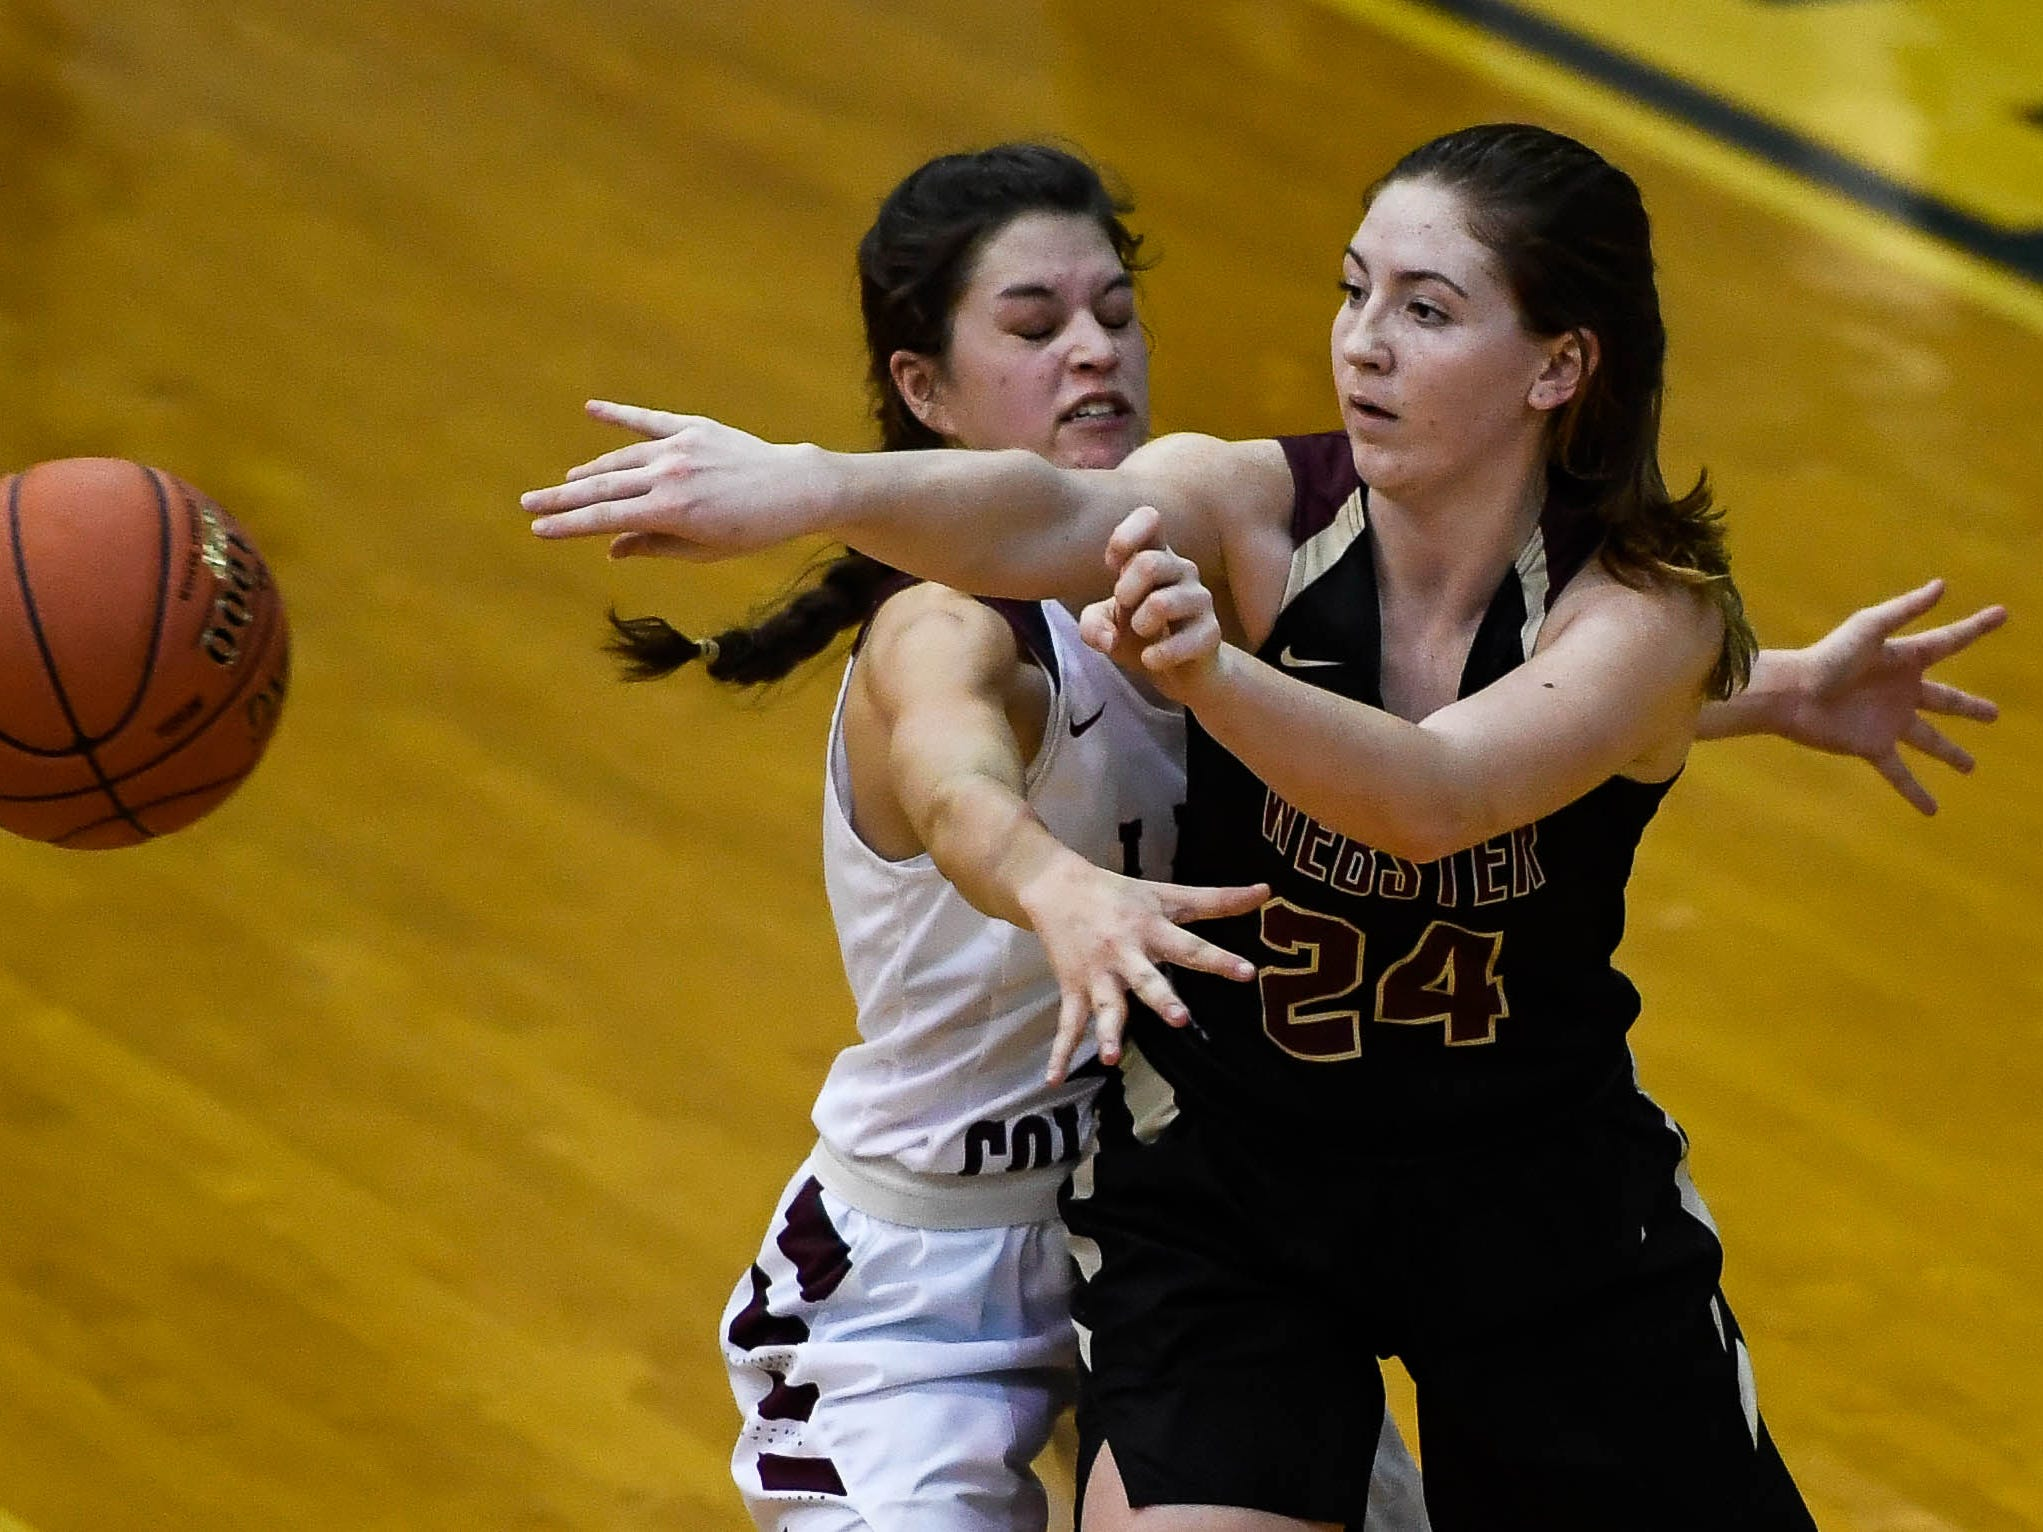 Webster County's Adeline McDyer (24) passes under defensive pressure from Henderson County's Katie Rideout (10) as the Webster County Lady Trojans play the Henderson County Colonels for the Girls Second Region Championship at the Rocket Arena in Marion Tuesday, March 5, 2019.